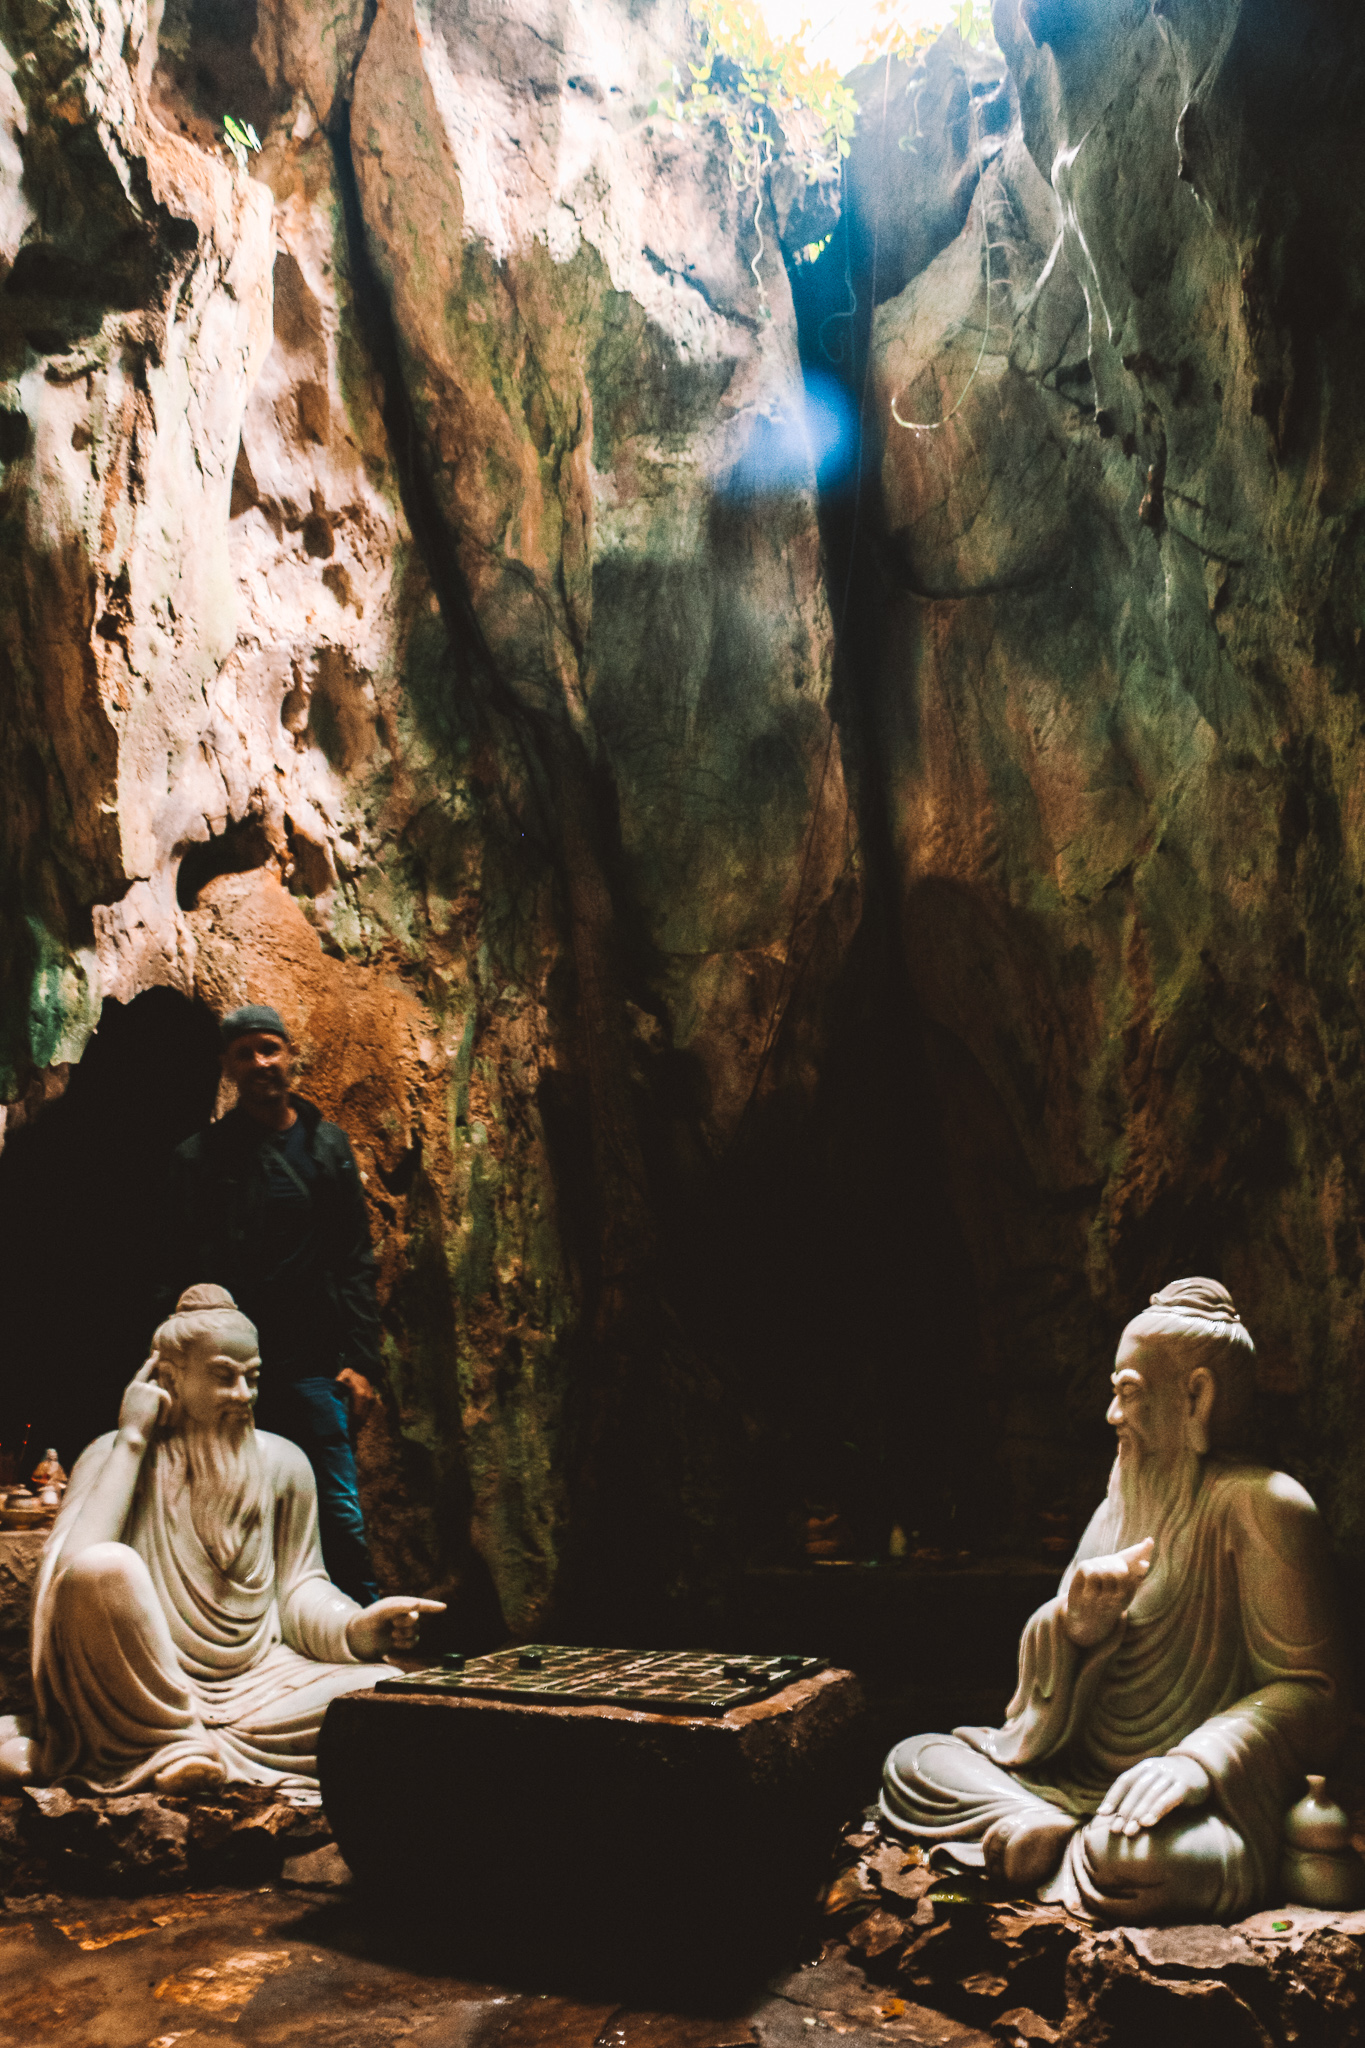 Statues inside the Marble Mountains